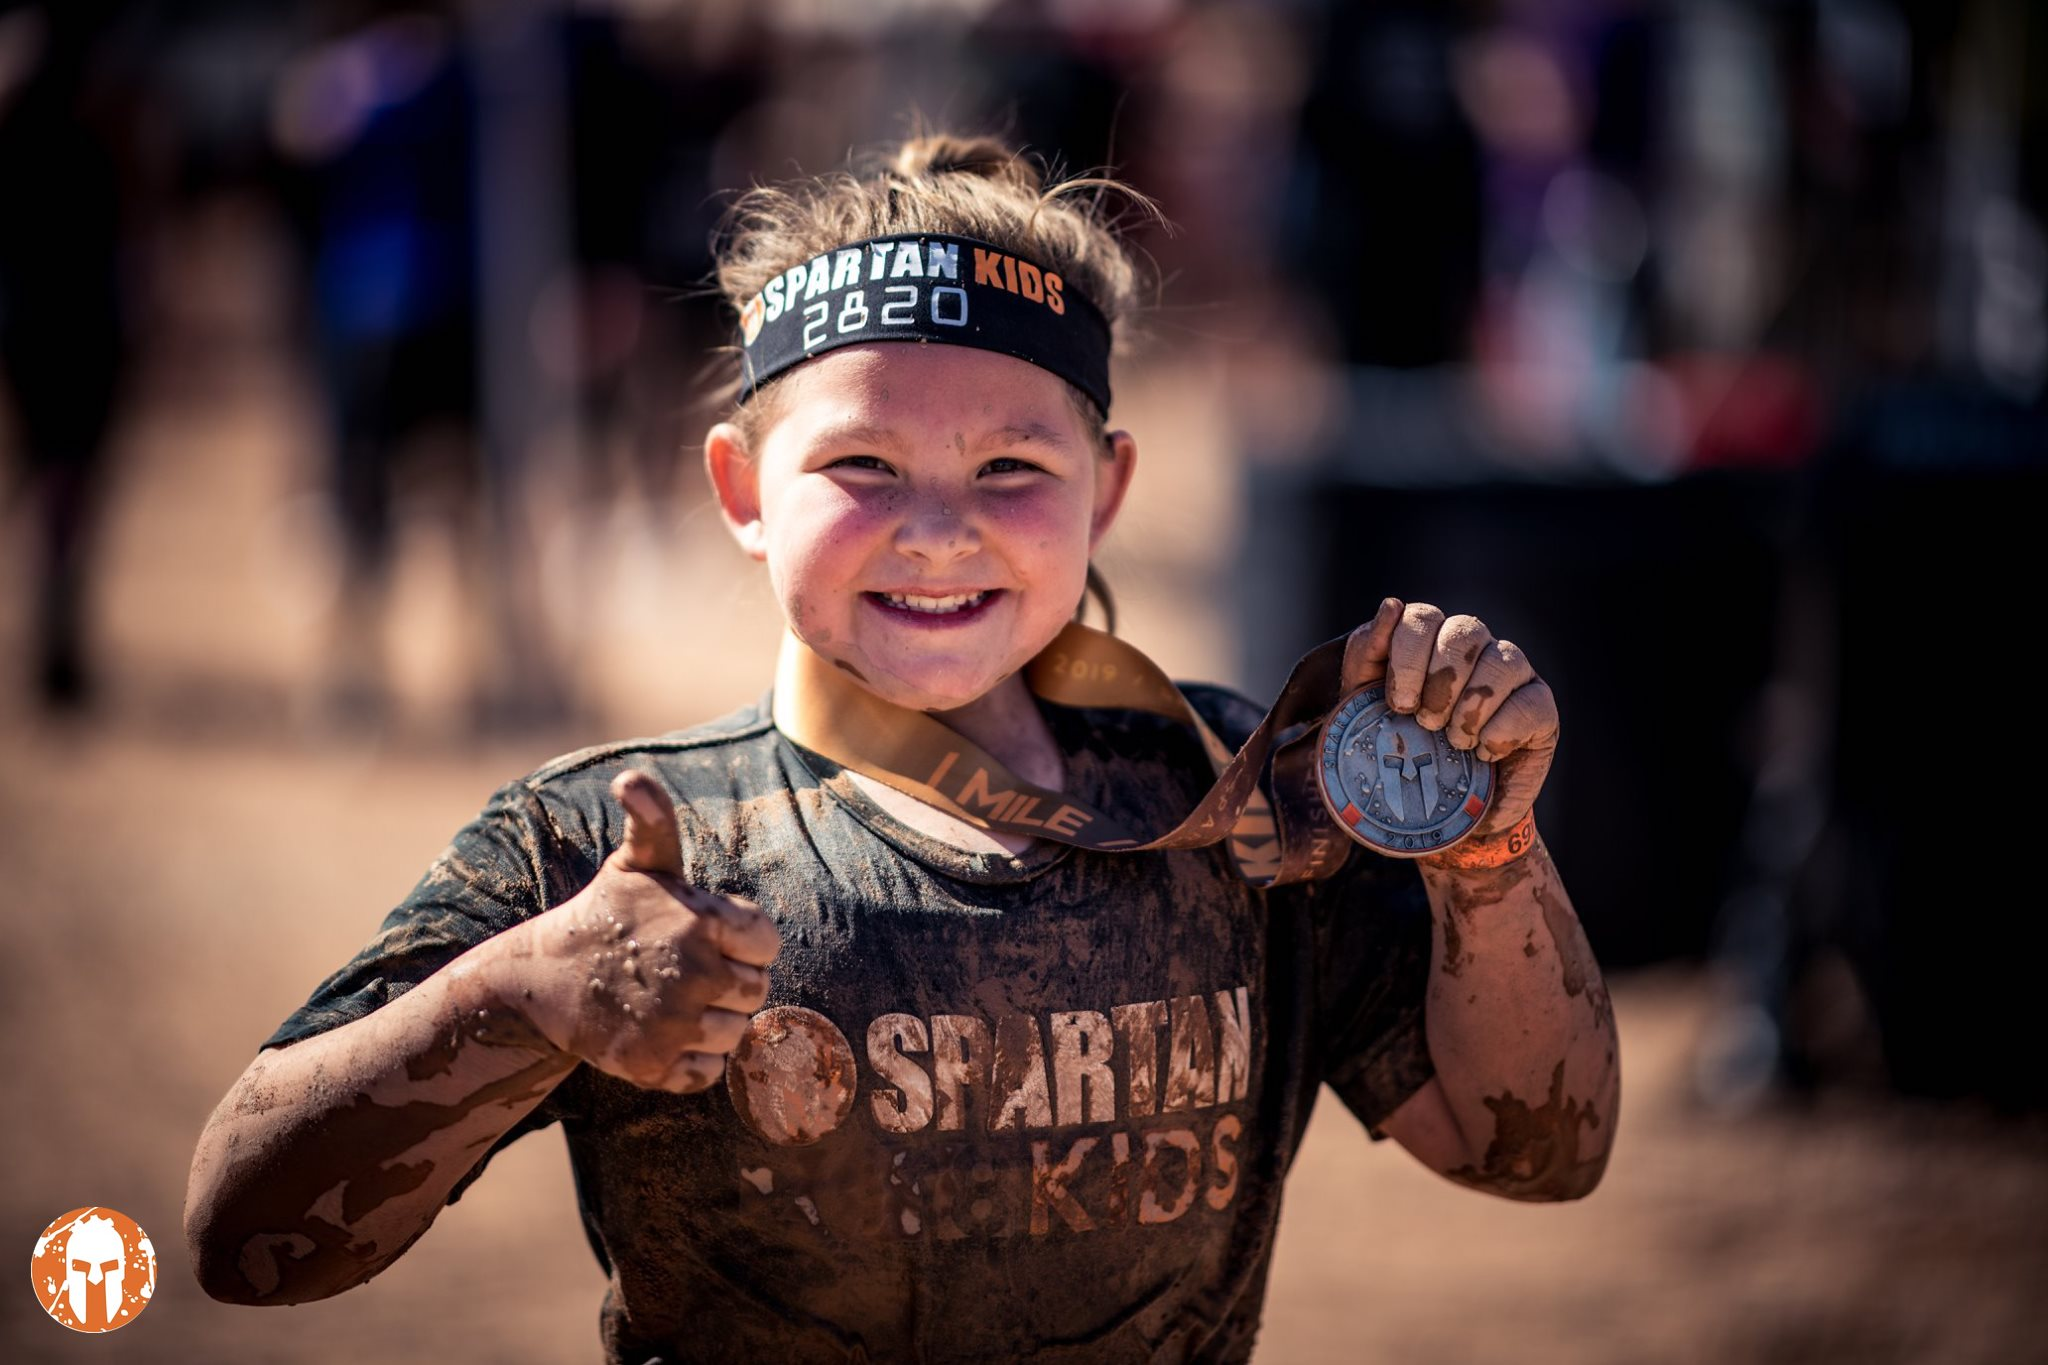 SoCal Kids Race - October 24th & 25th 2020